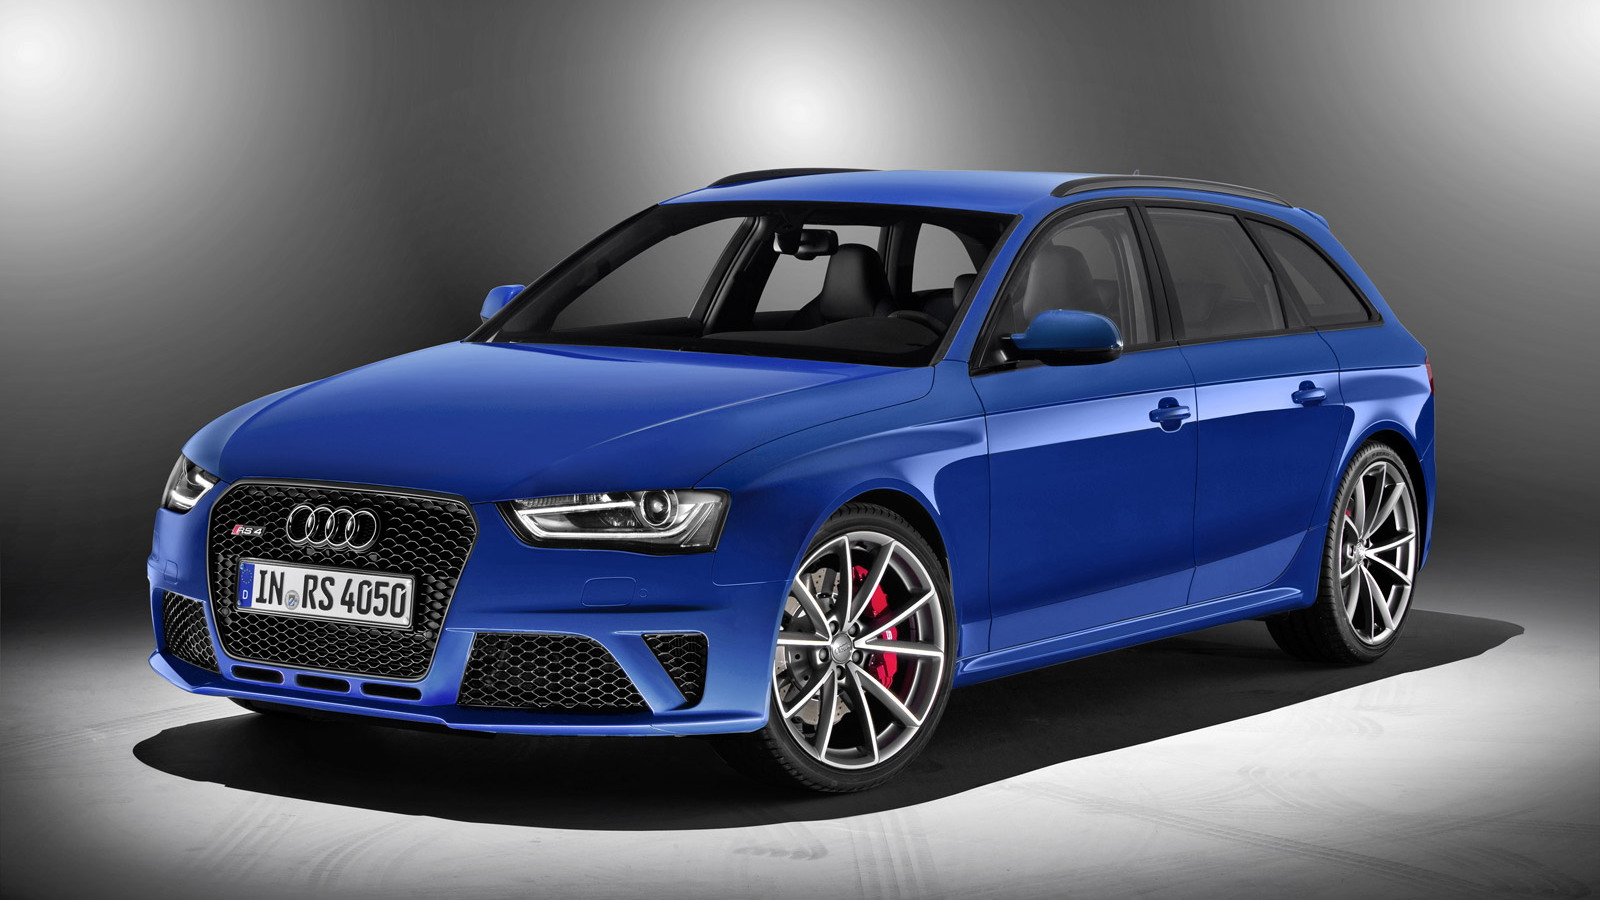 2014 Audi RS 4 Avant Nogaro selection